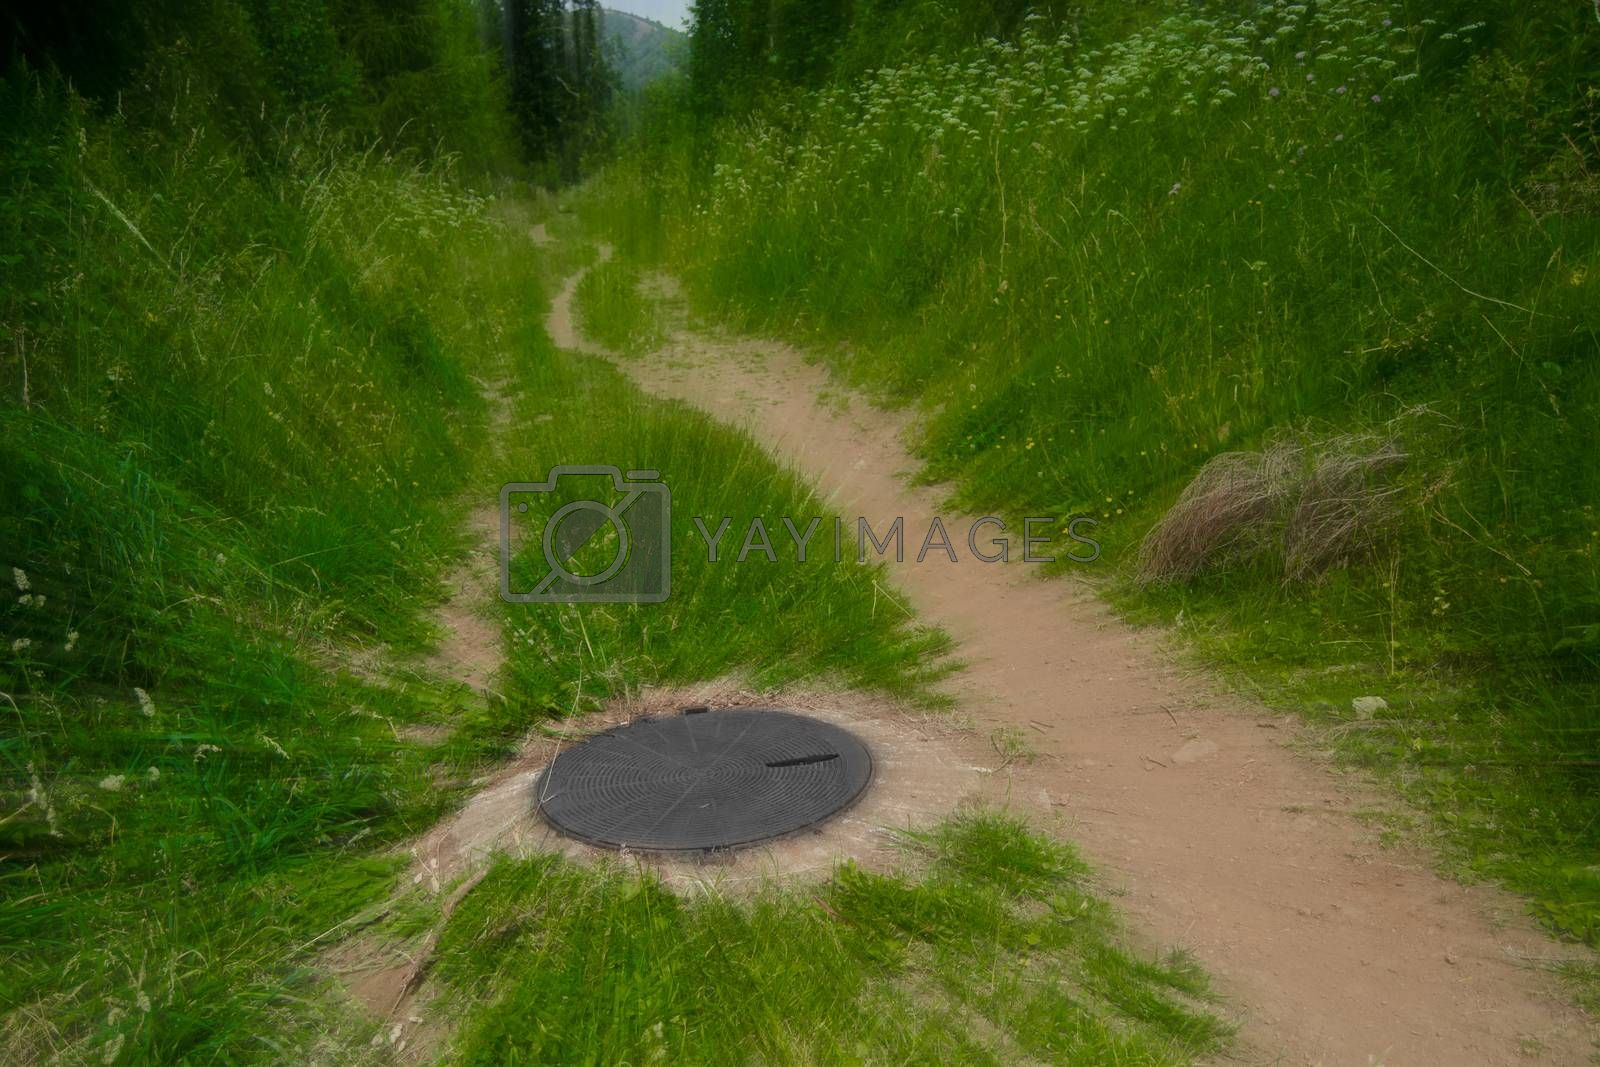 unnatural sewer cover in the middle of forest path